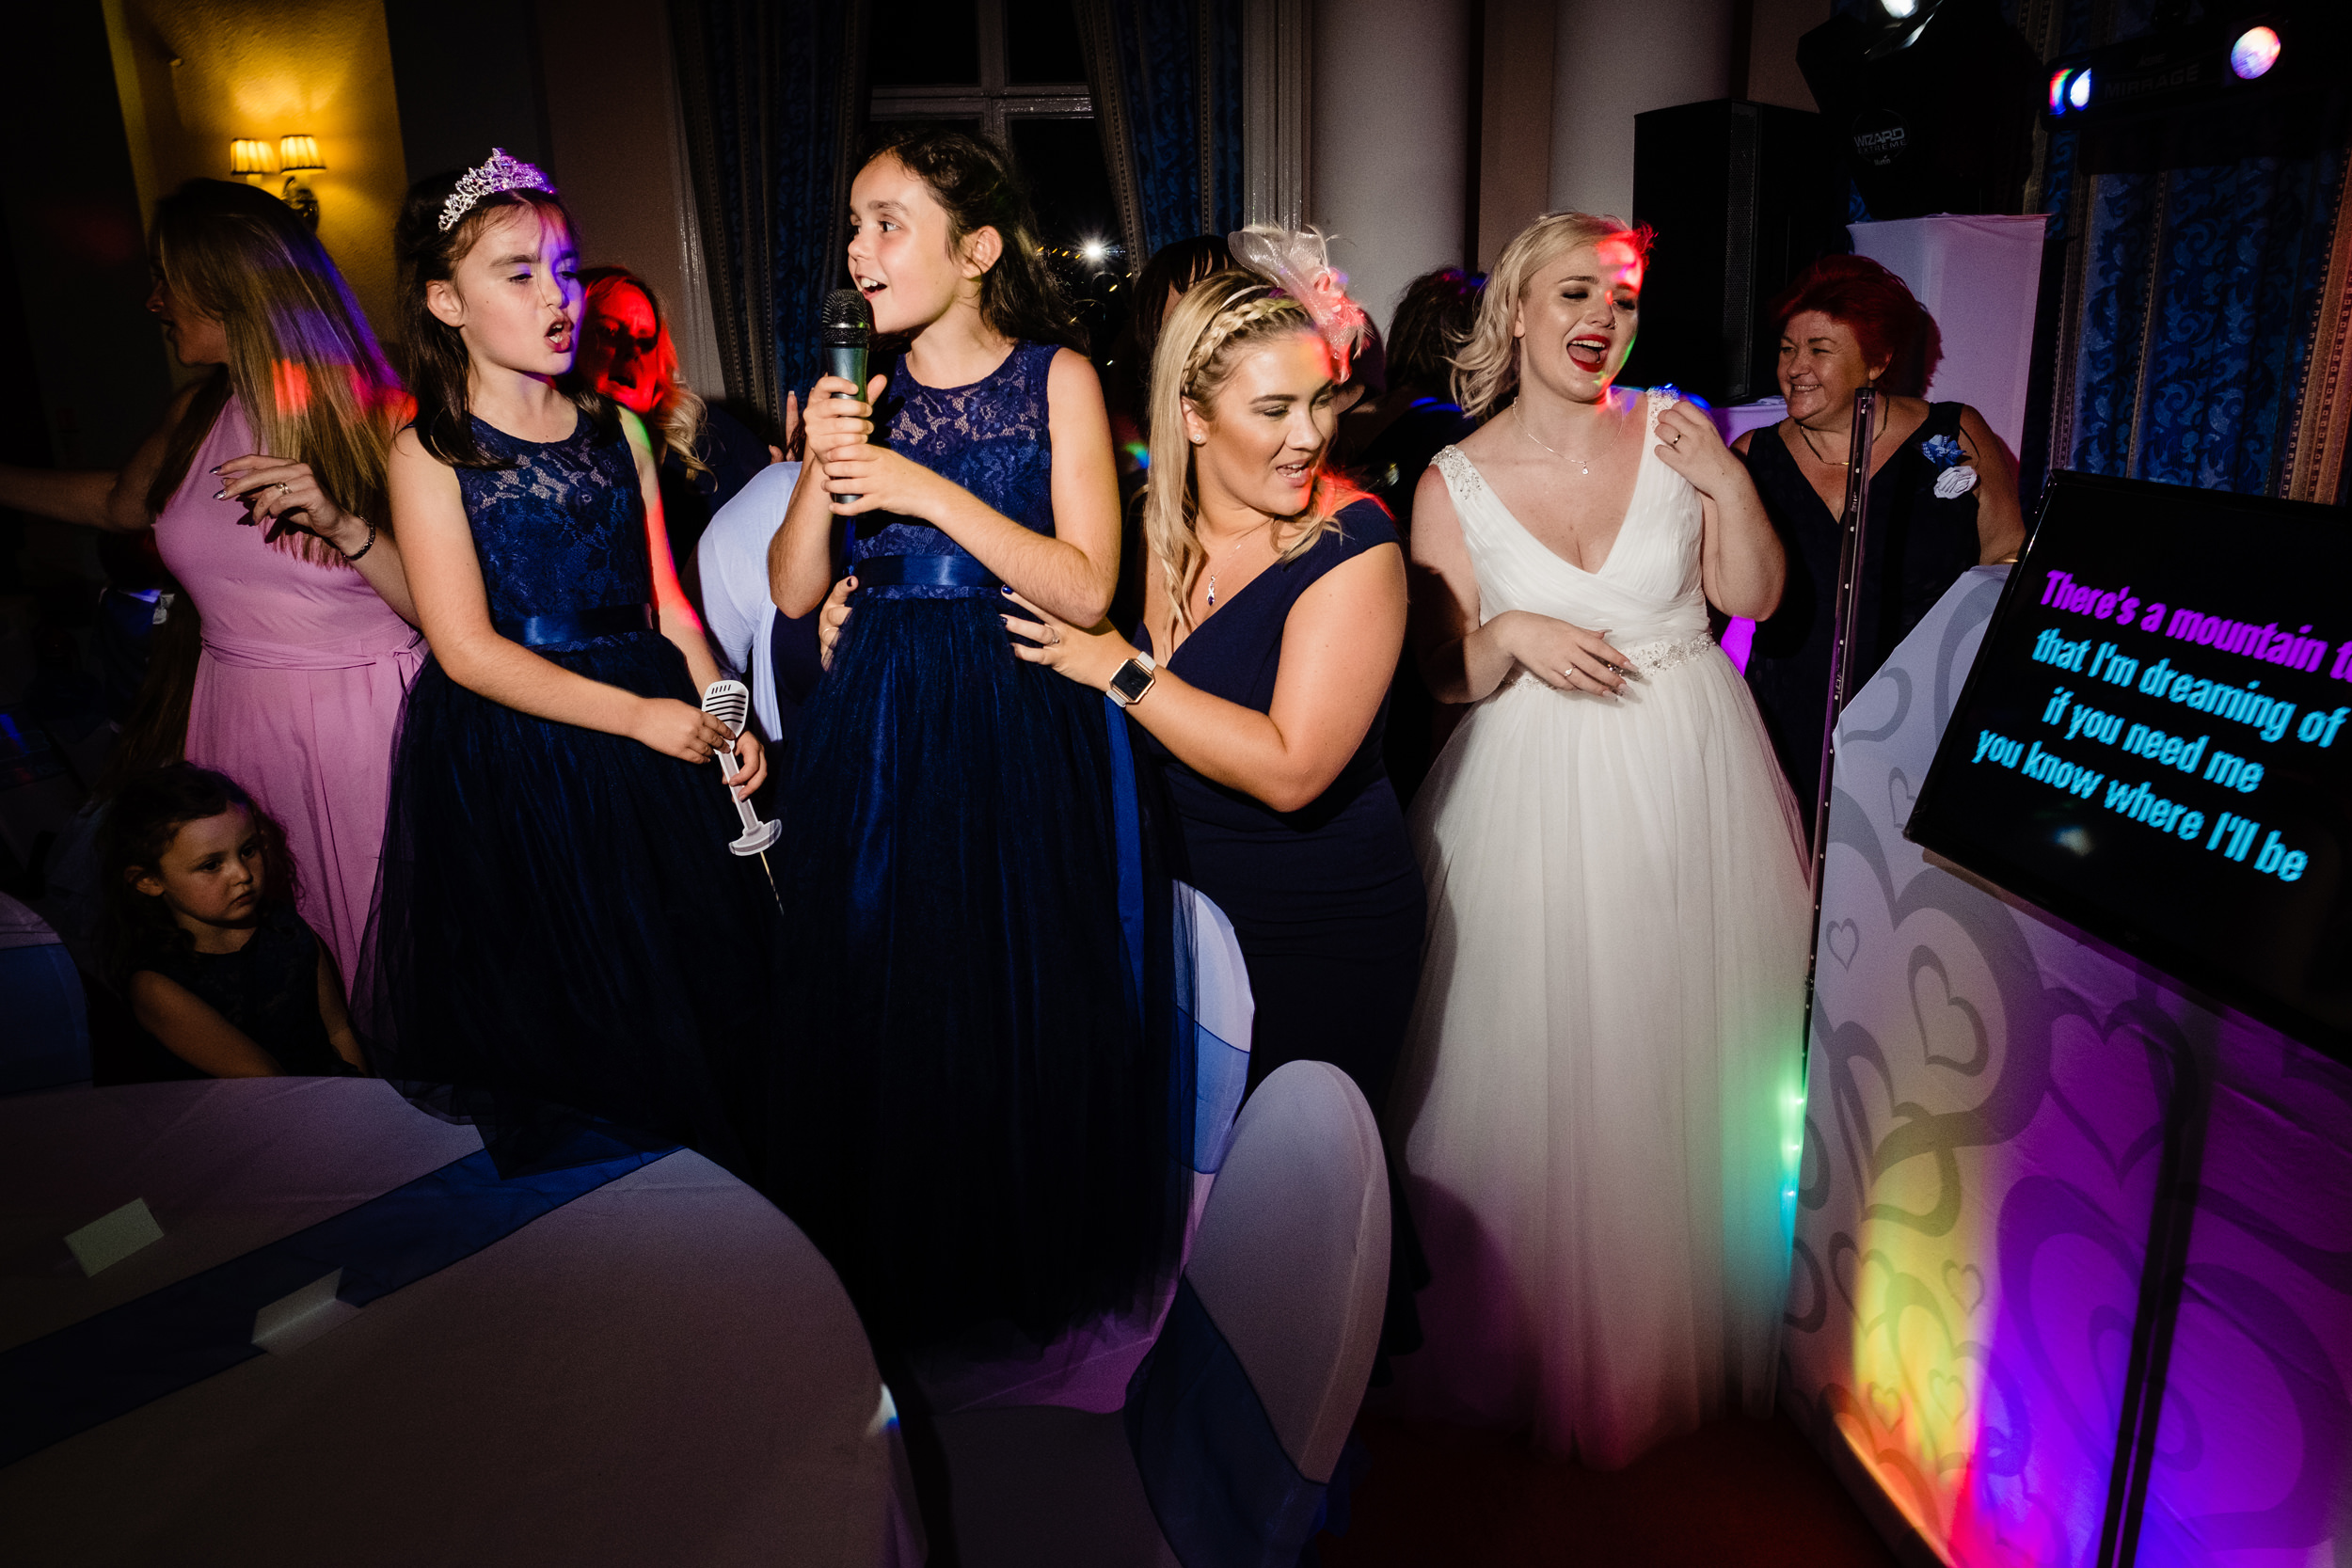 bridal party singing karaoke. grand hotel scarborough wedding photography by emma and rich.